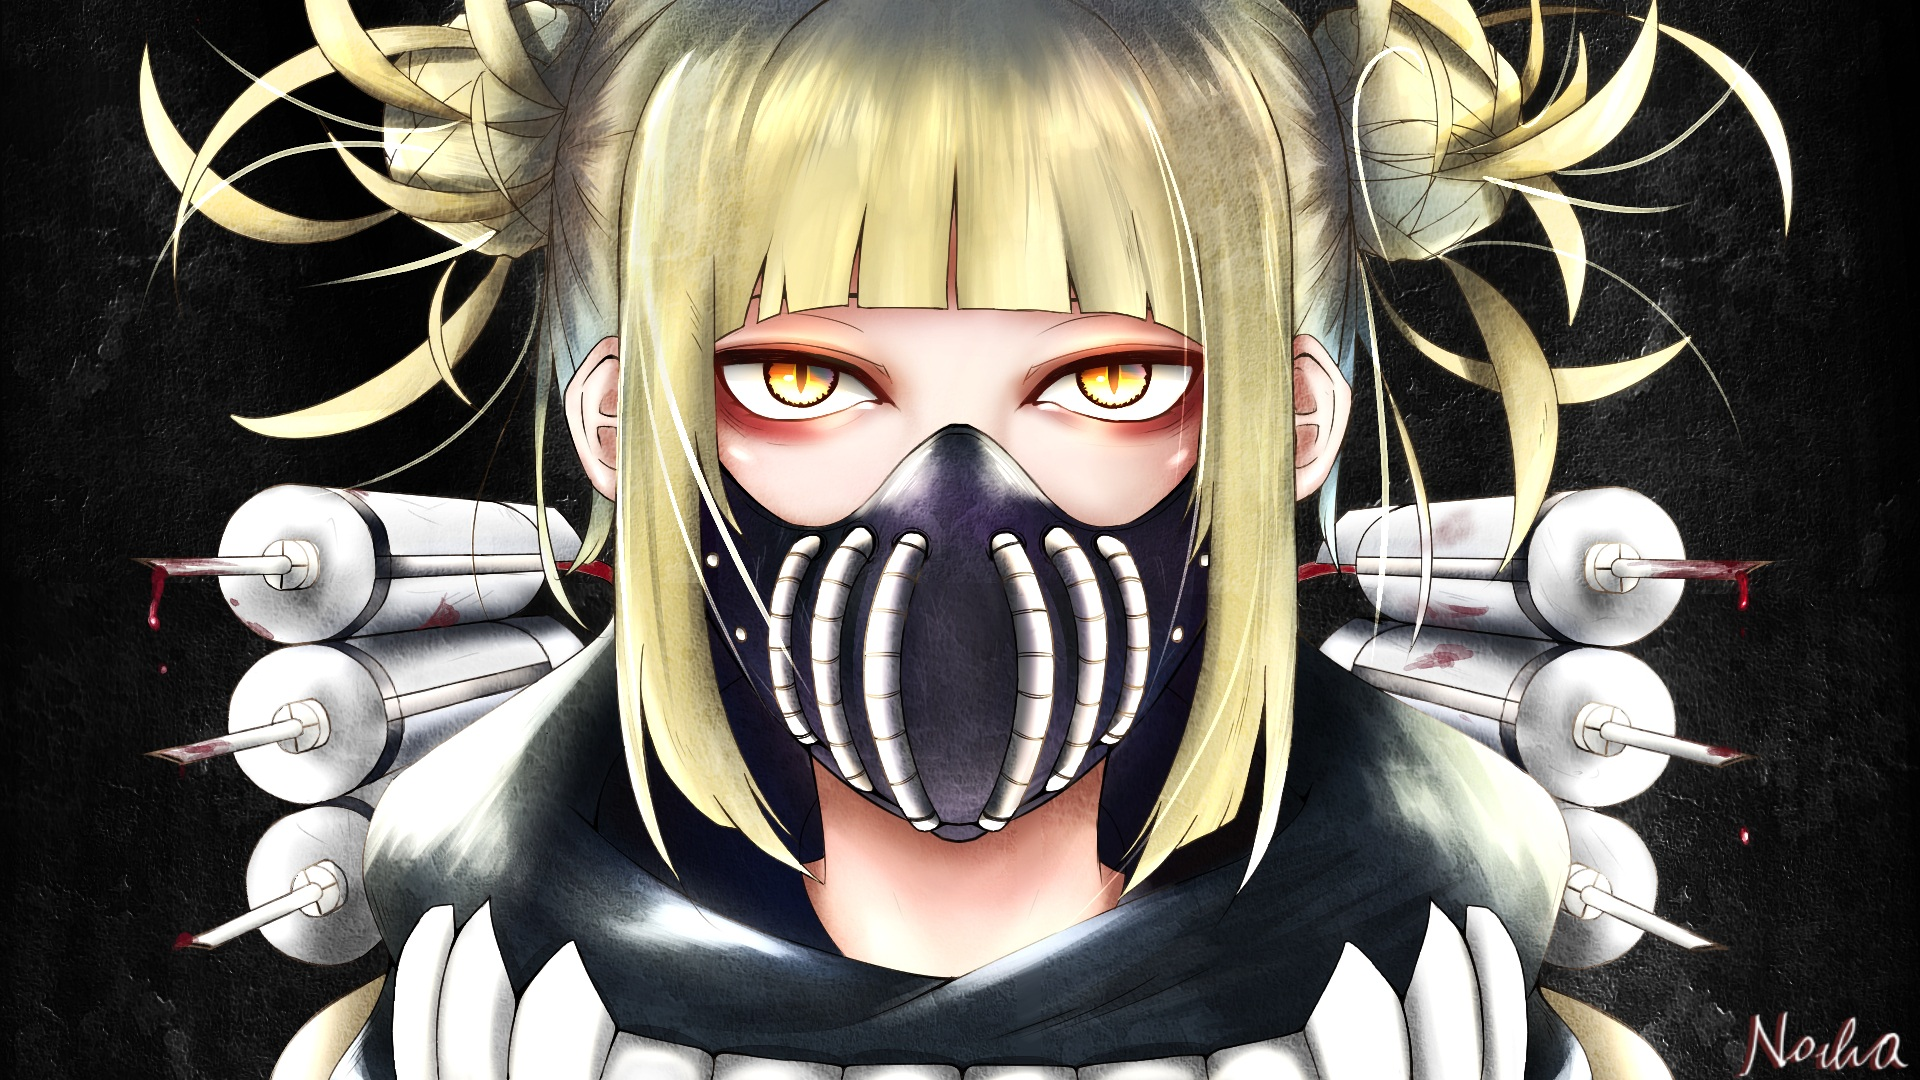 Himiko Toga Wallpaper Hd Posted By Zoey Cunningham